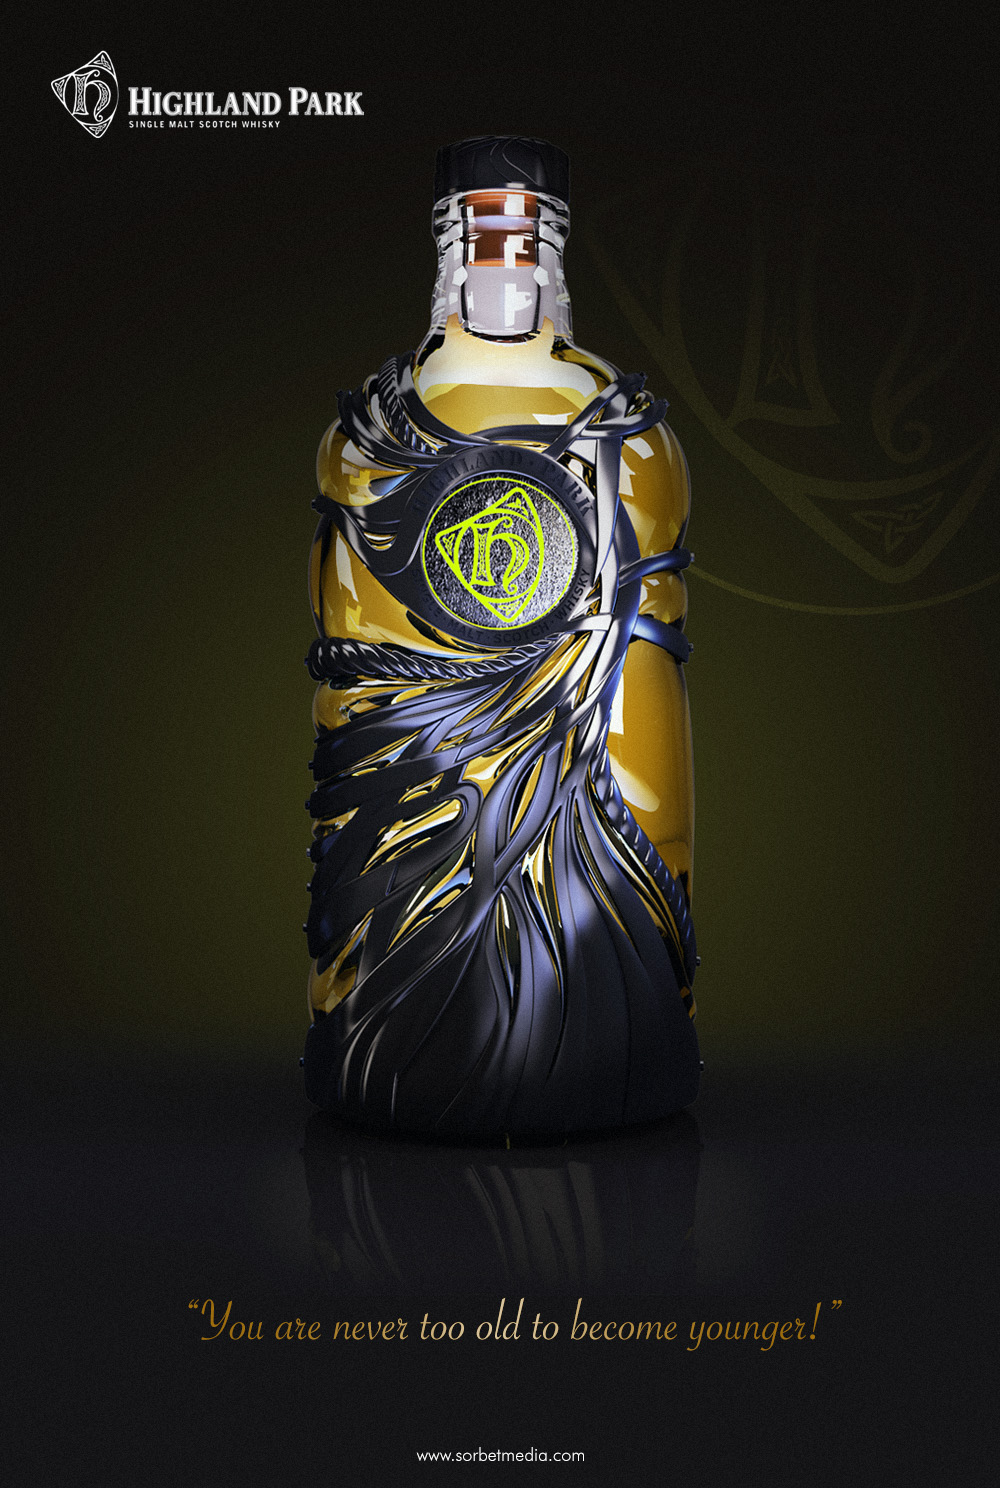 Highland Park 50 year old Whiskey - Black Edition - Concept  visual